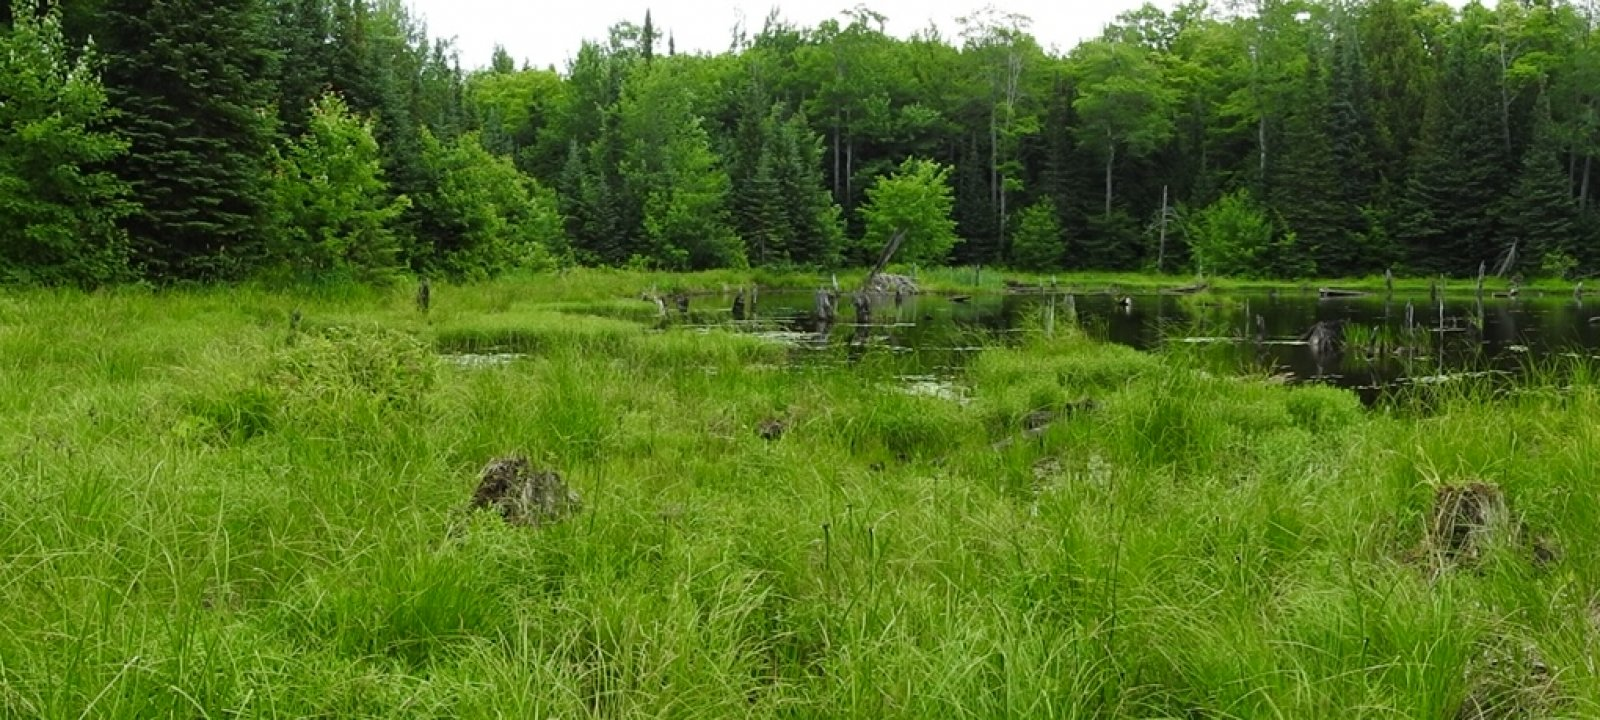 Beaver pond near Gratiot Lake, where KISMA has been removing European marsh thistle (Cirsium palustre) for four years with great results